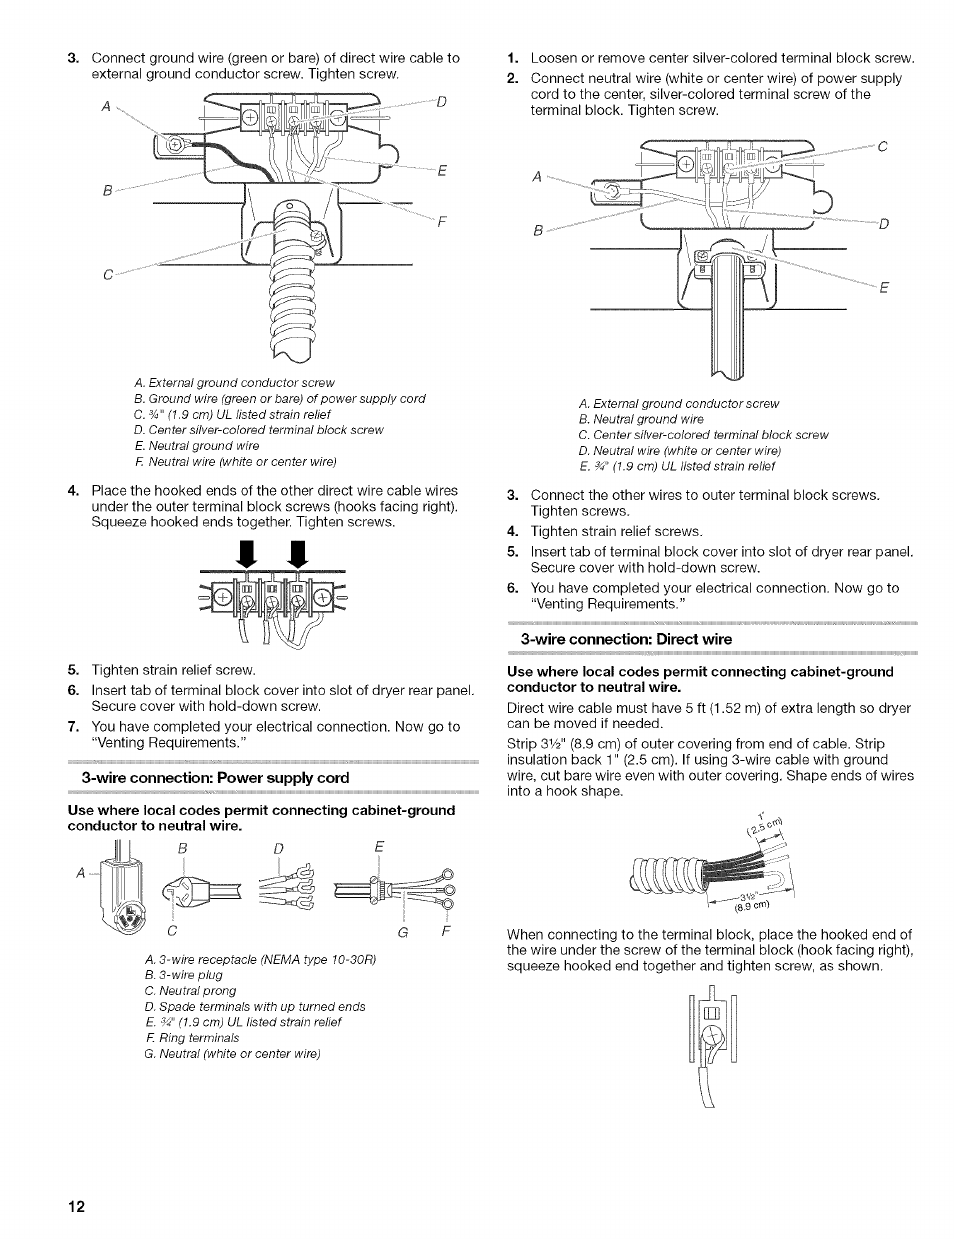 hight resolution of wire connection power suppiy cord wire connection direct wire kenmore 110 8509 user manual page 12 60